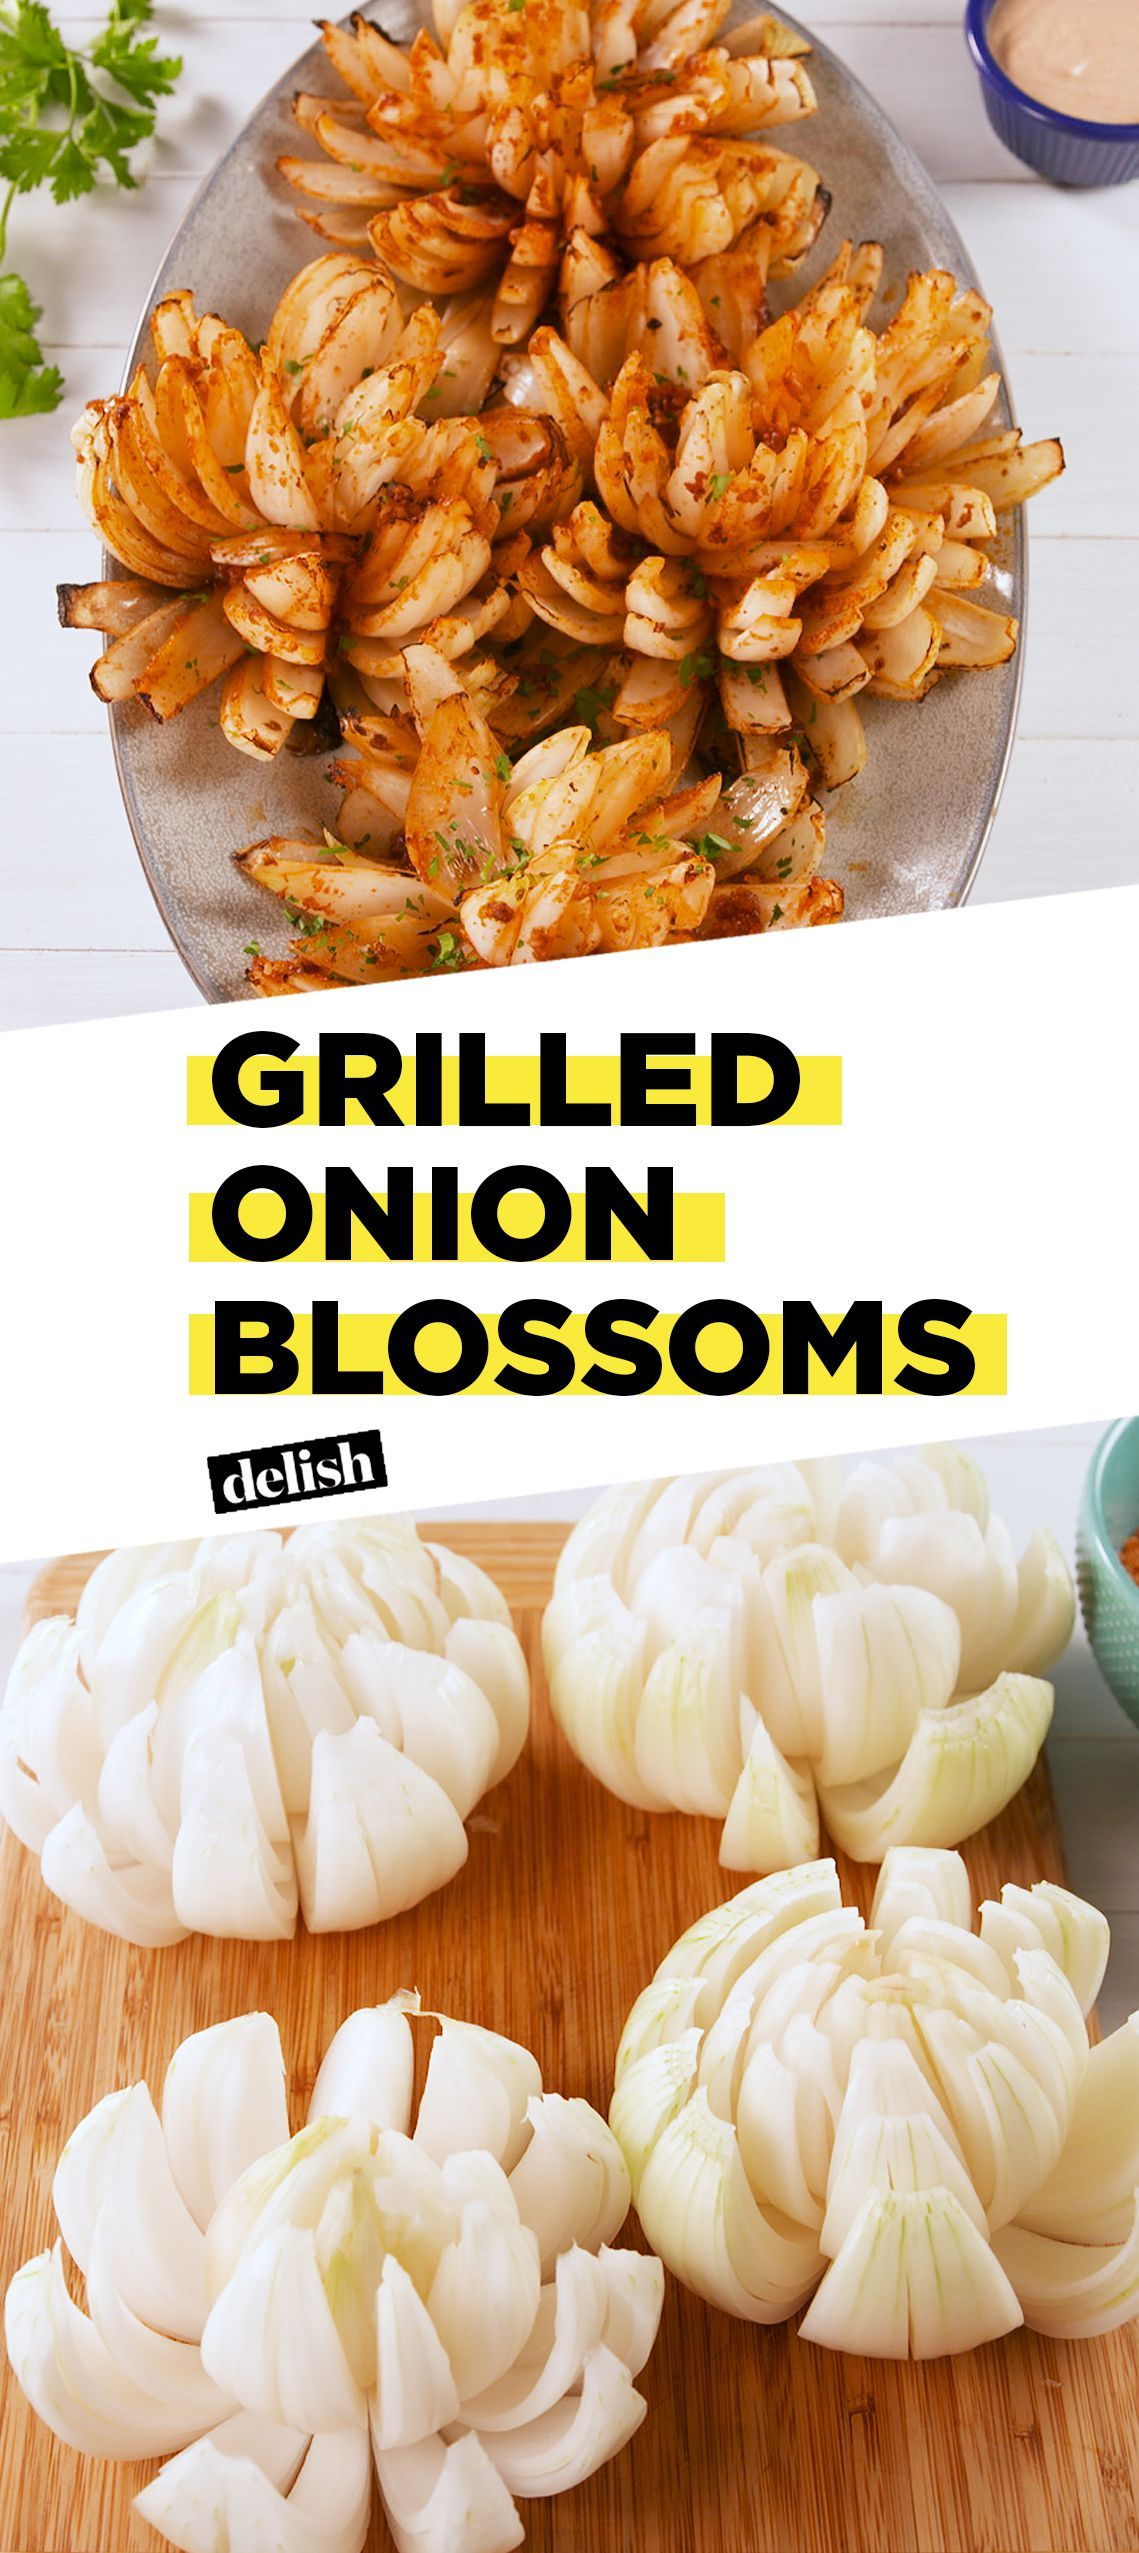 Grilled Onion Blossoms Are Summer's Low-Carb Bloomin' Onion